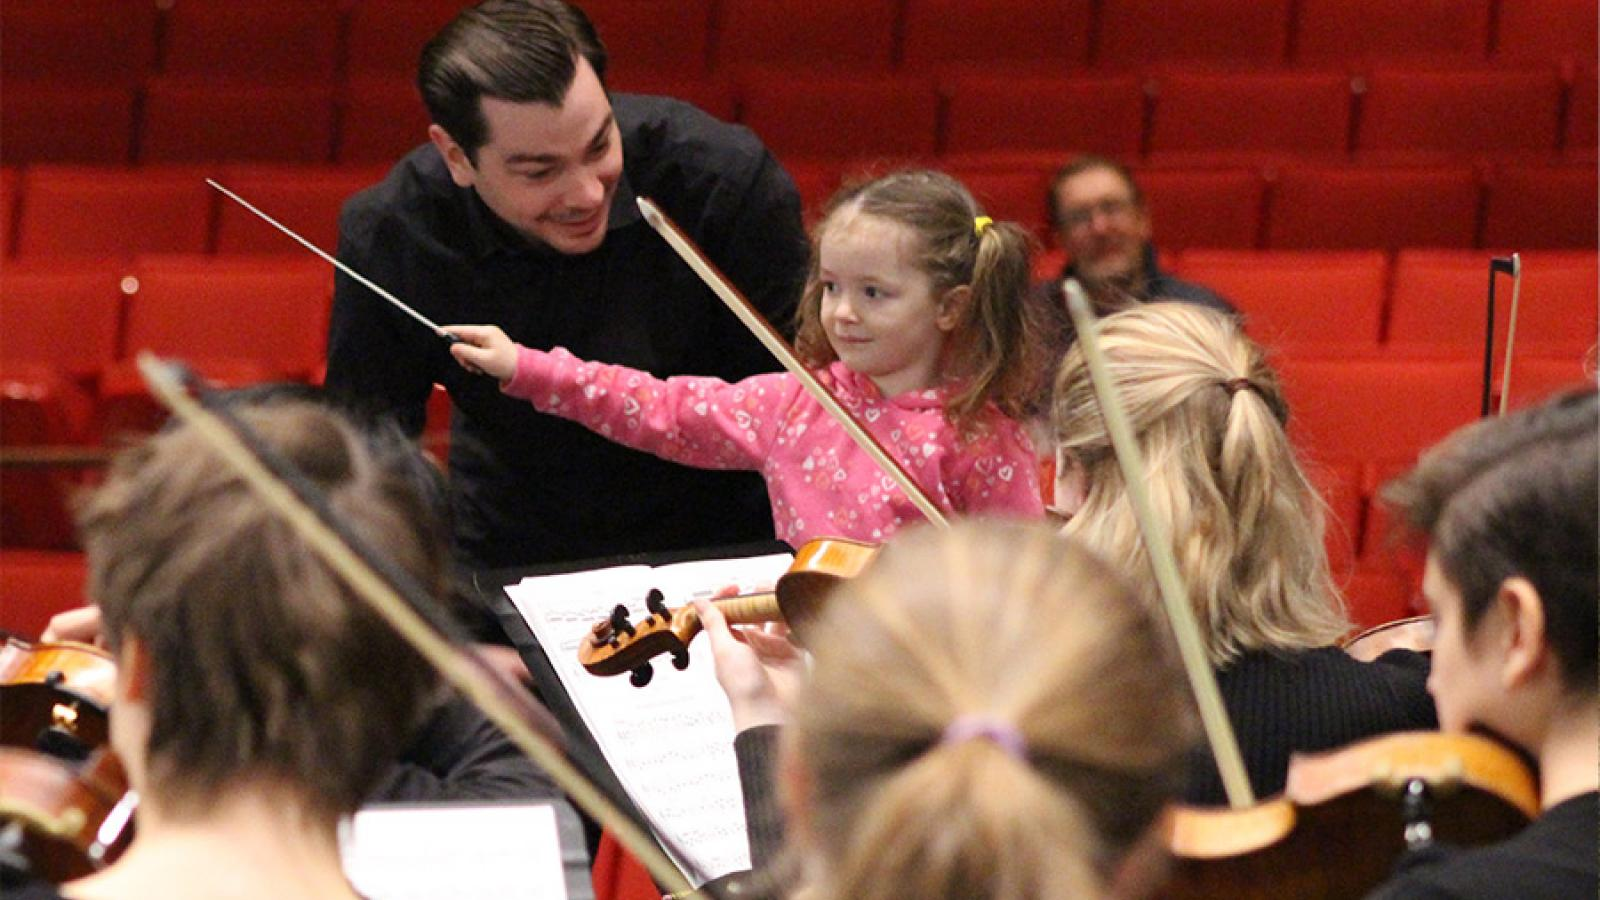 A faculty member teaches a girl how to conduct an ensemble